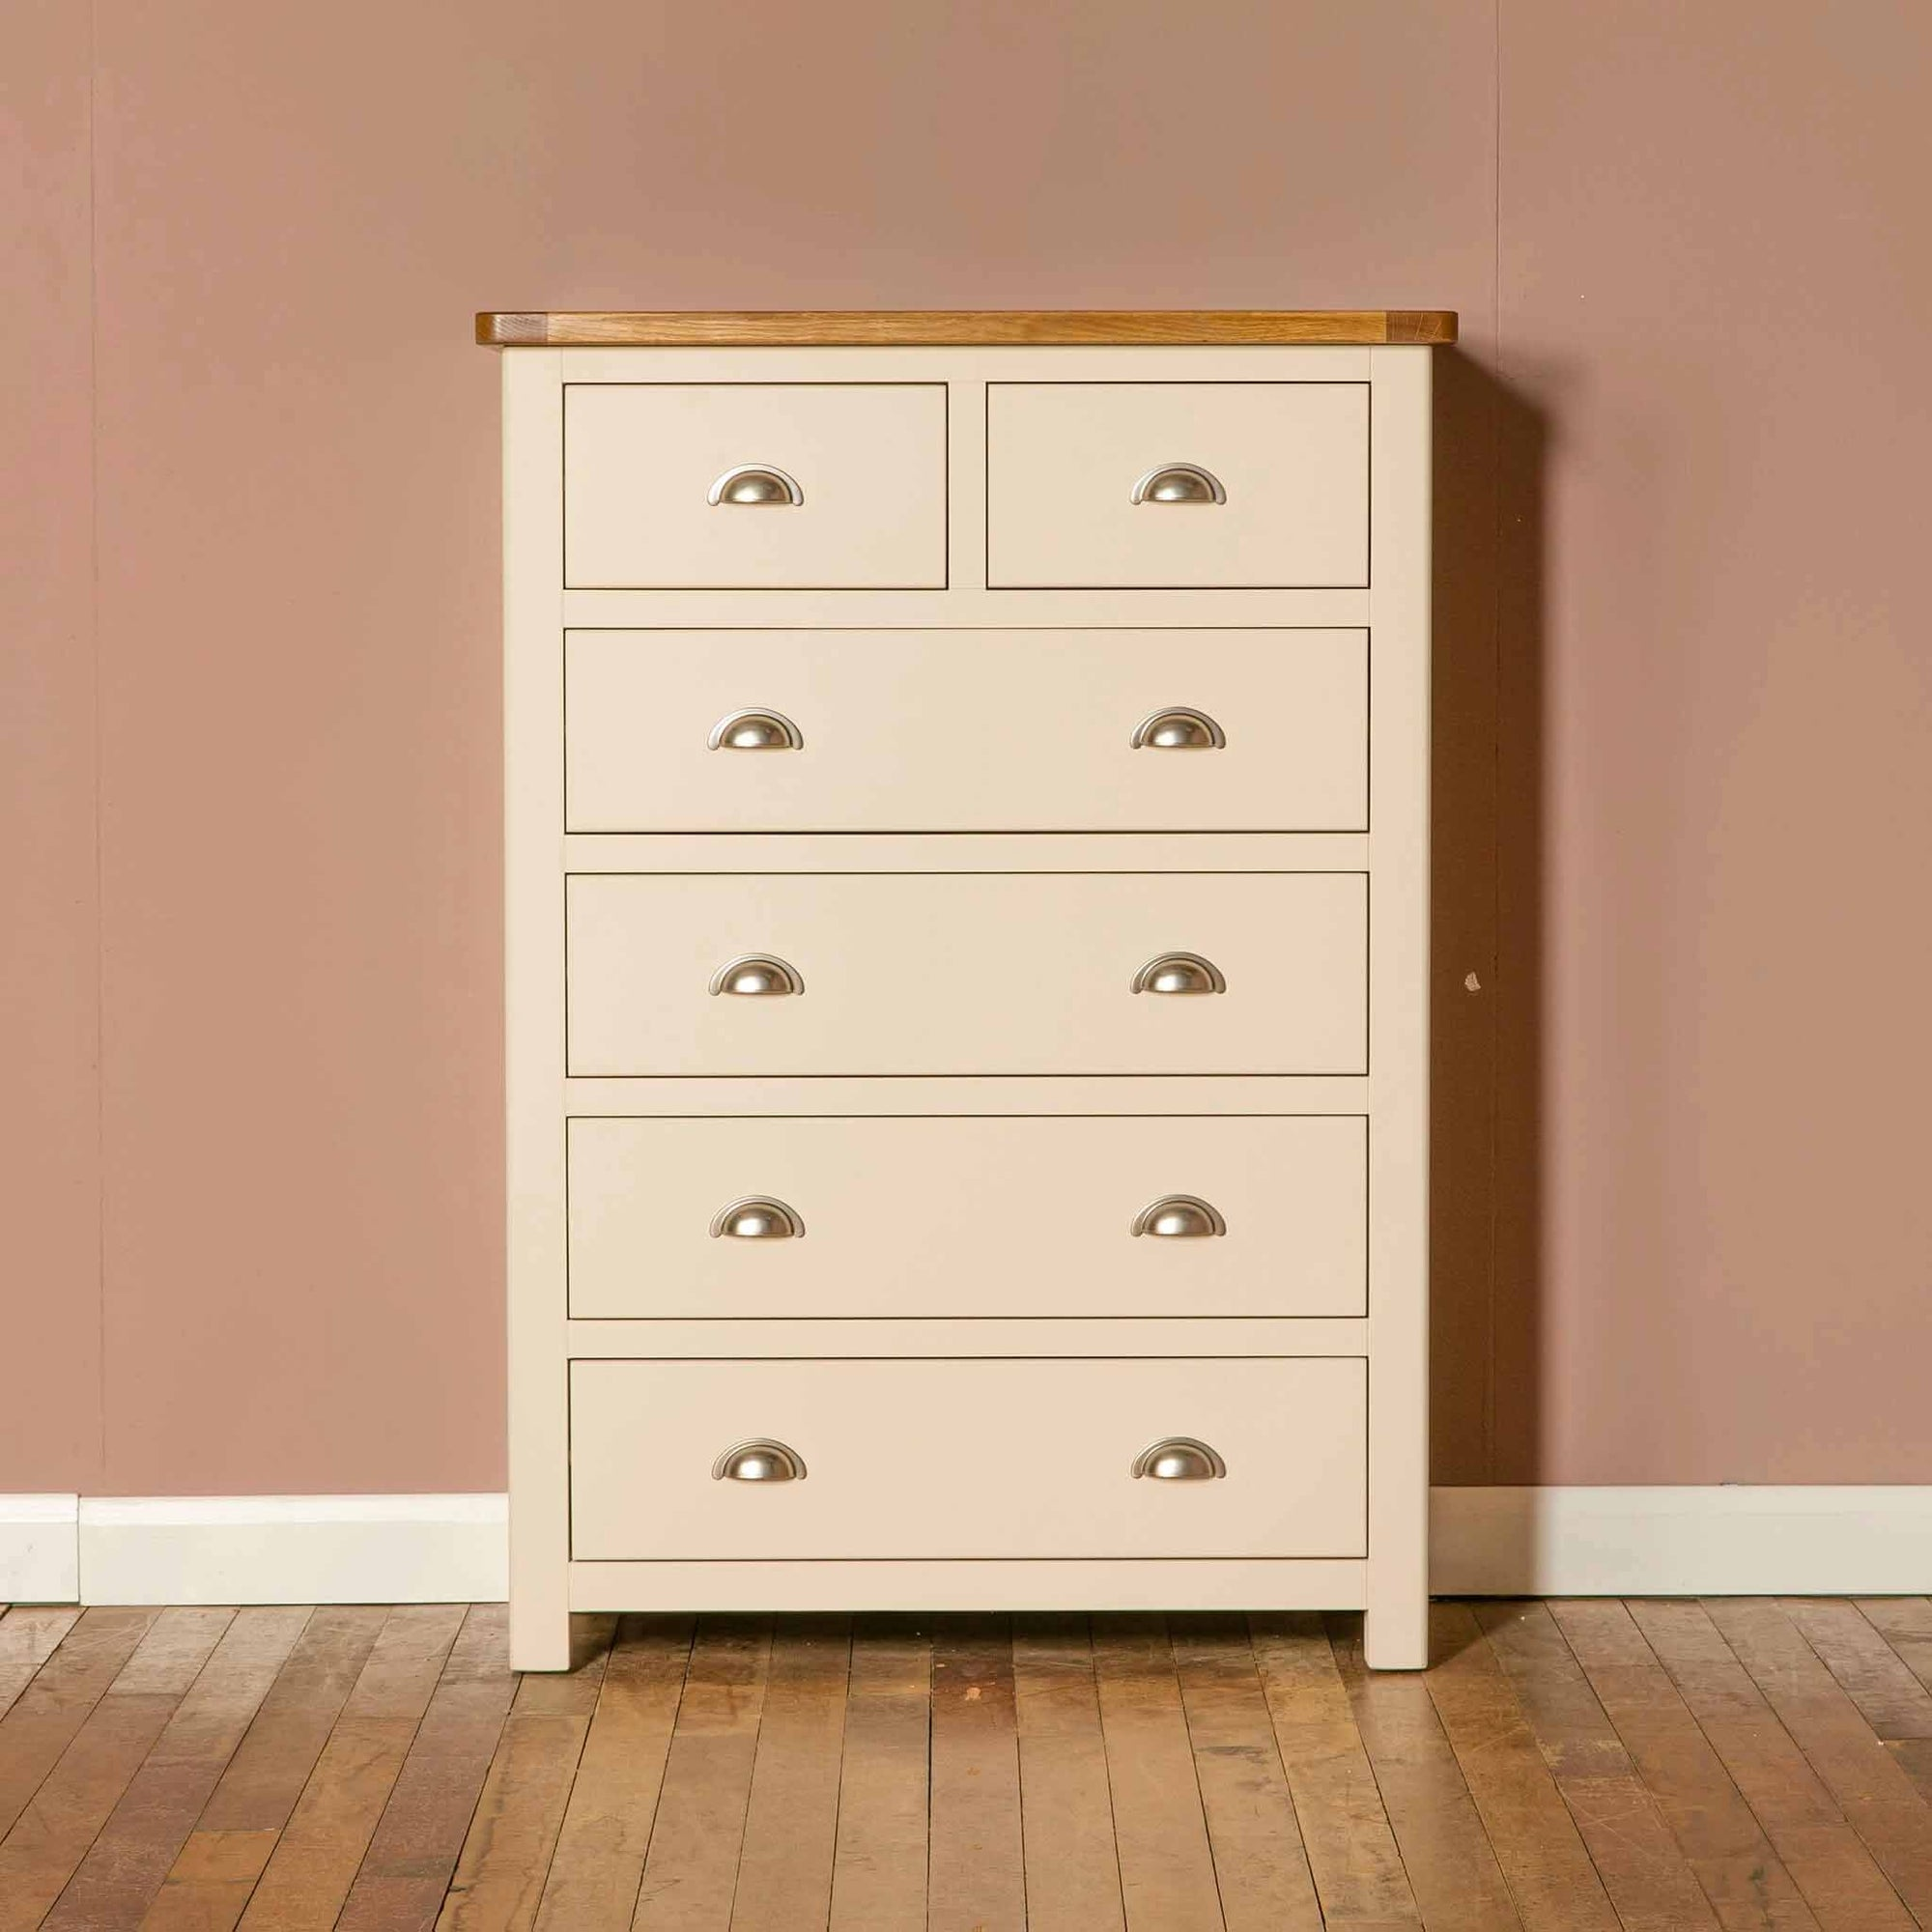 The Padstow Cream Large Wooden Chest of Drawers with Oak Top from Roseland Furniture